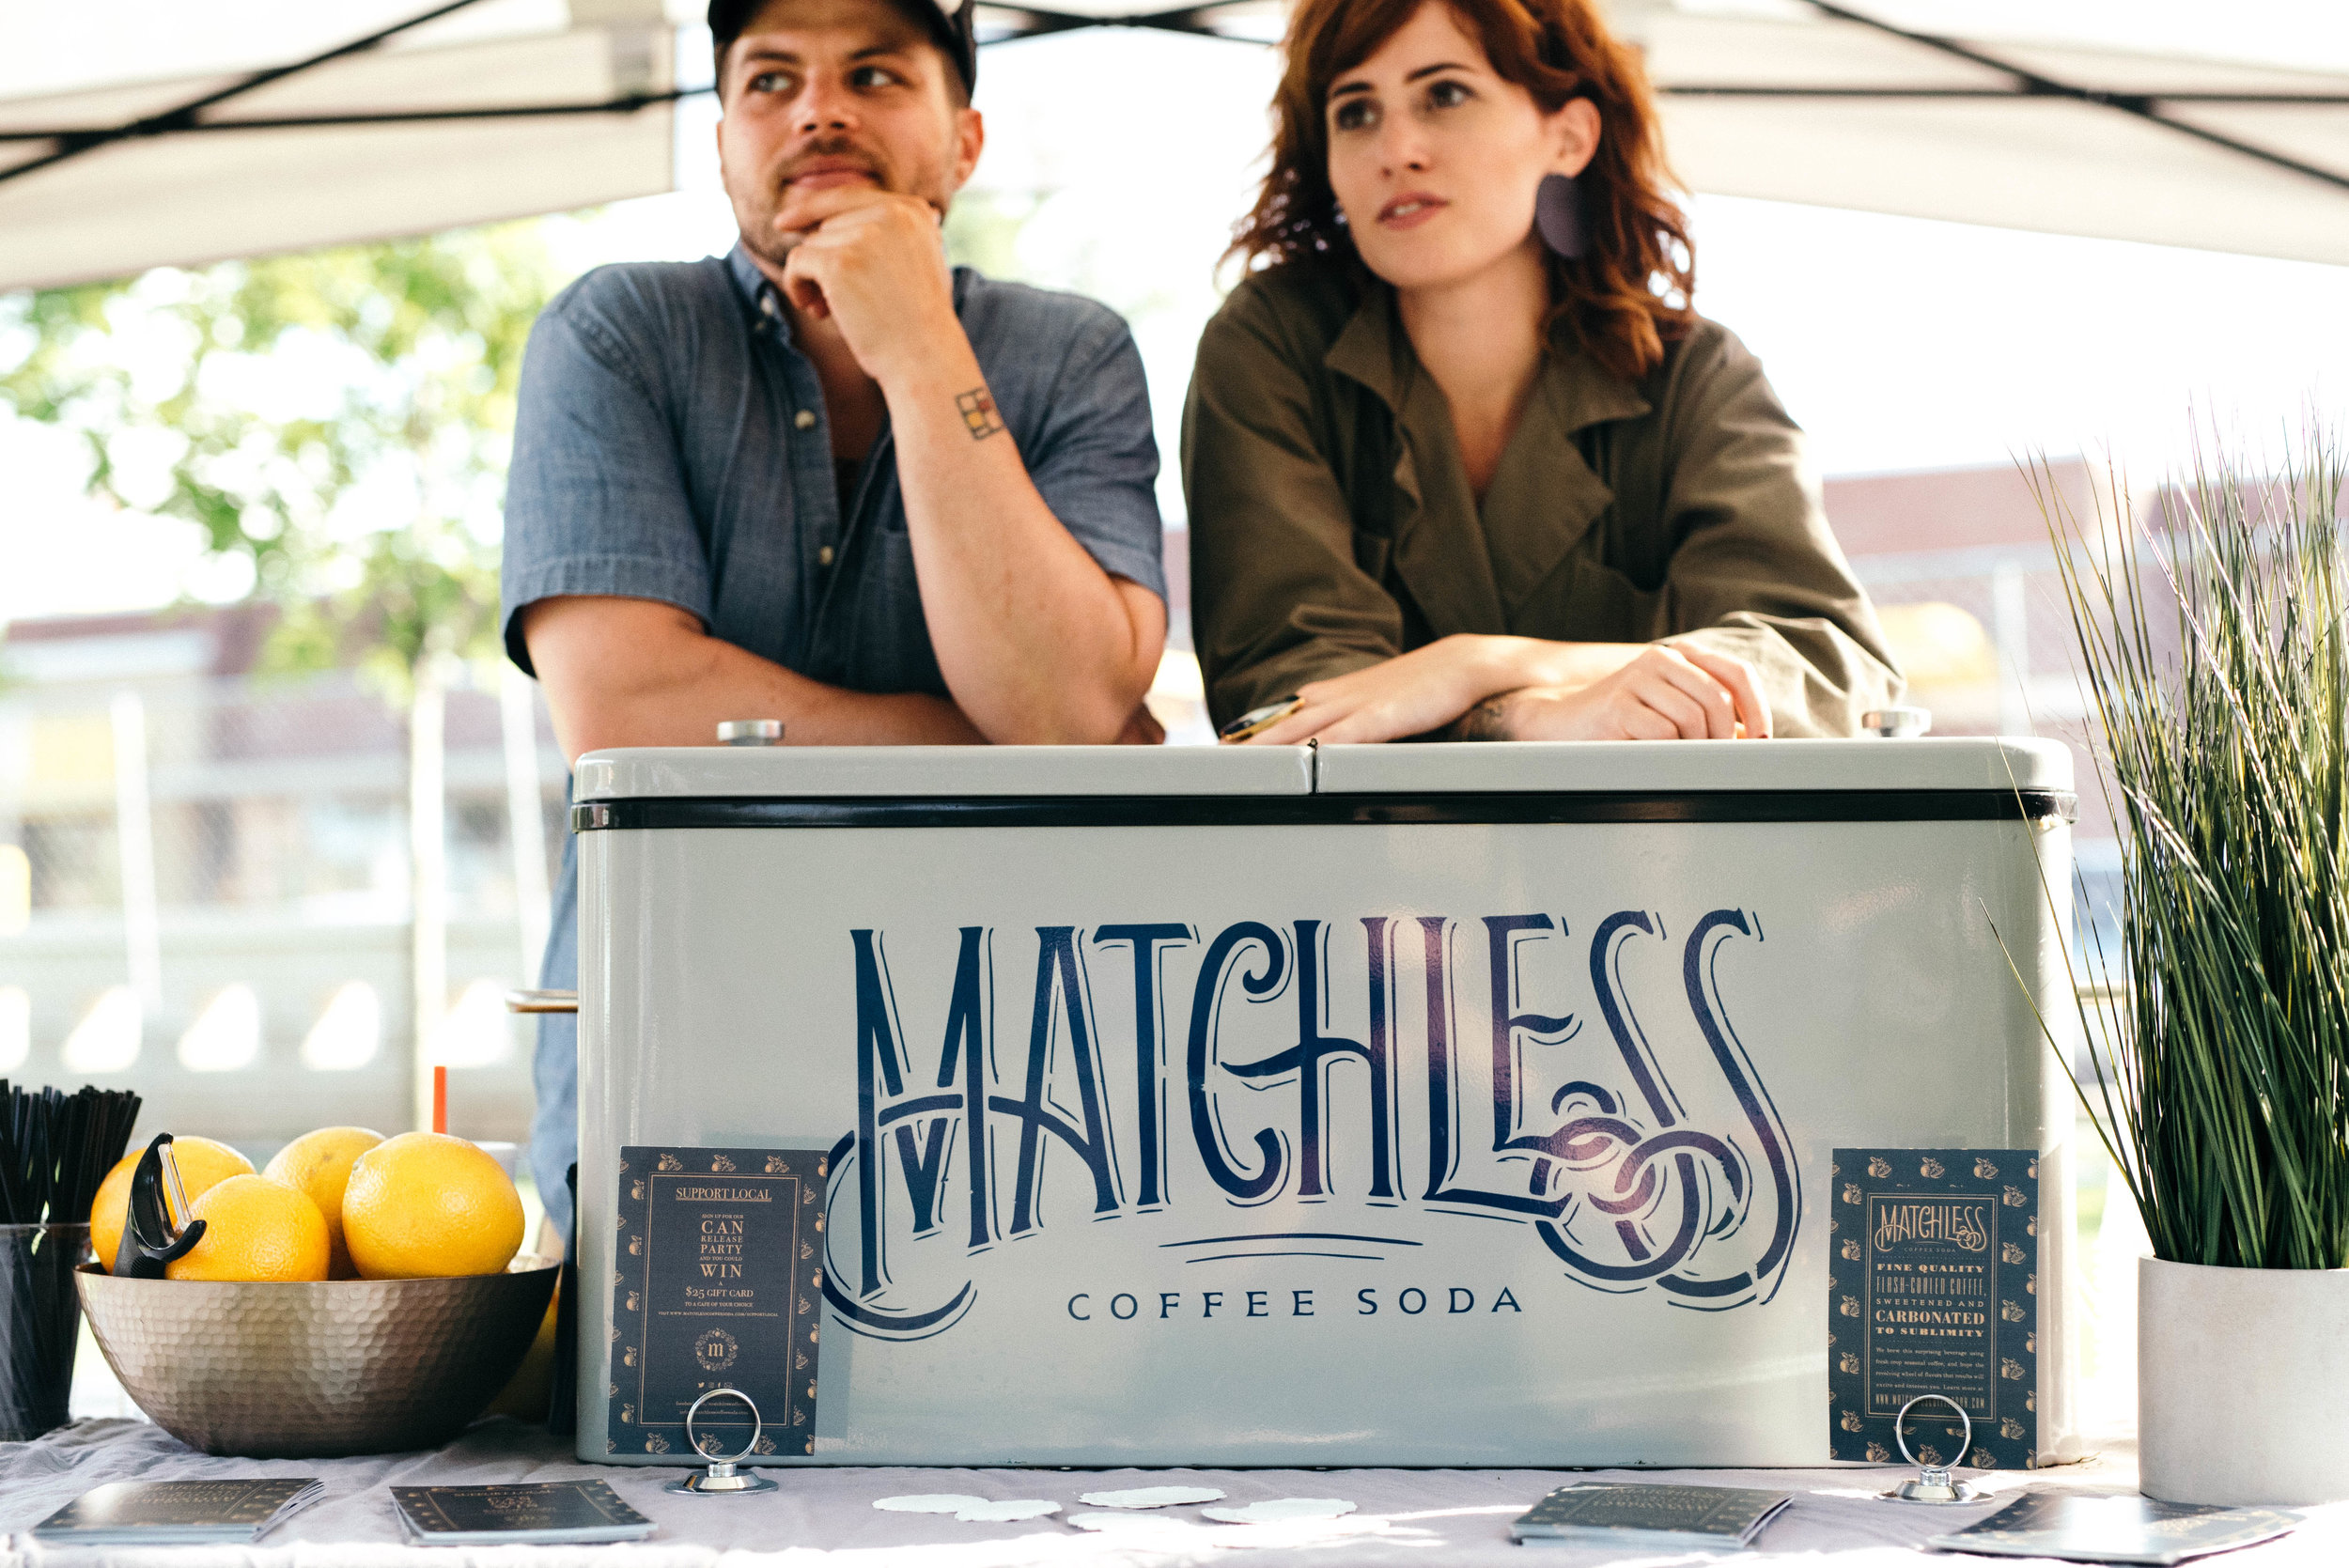 Nathanael Mehrens and Savannah Packard at a pop-up Matchless Coffee Soda® event.